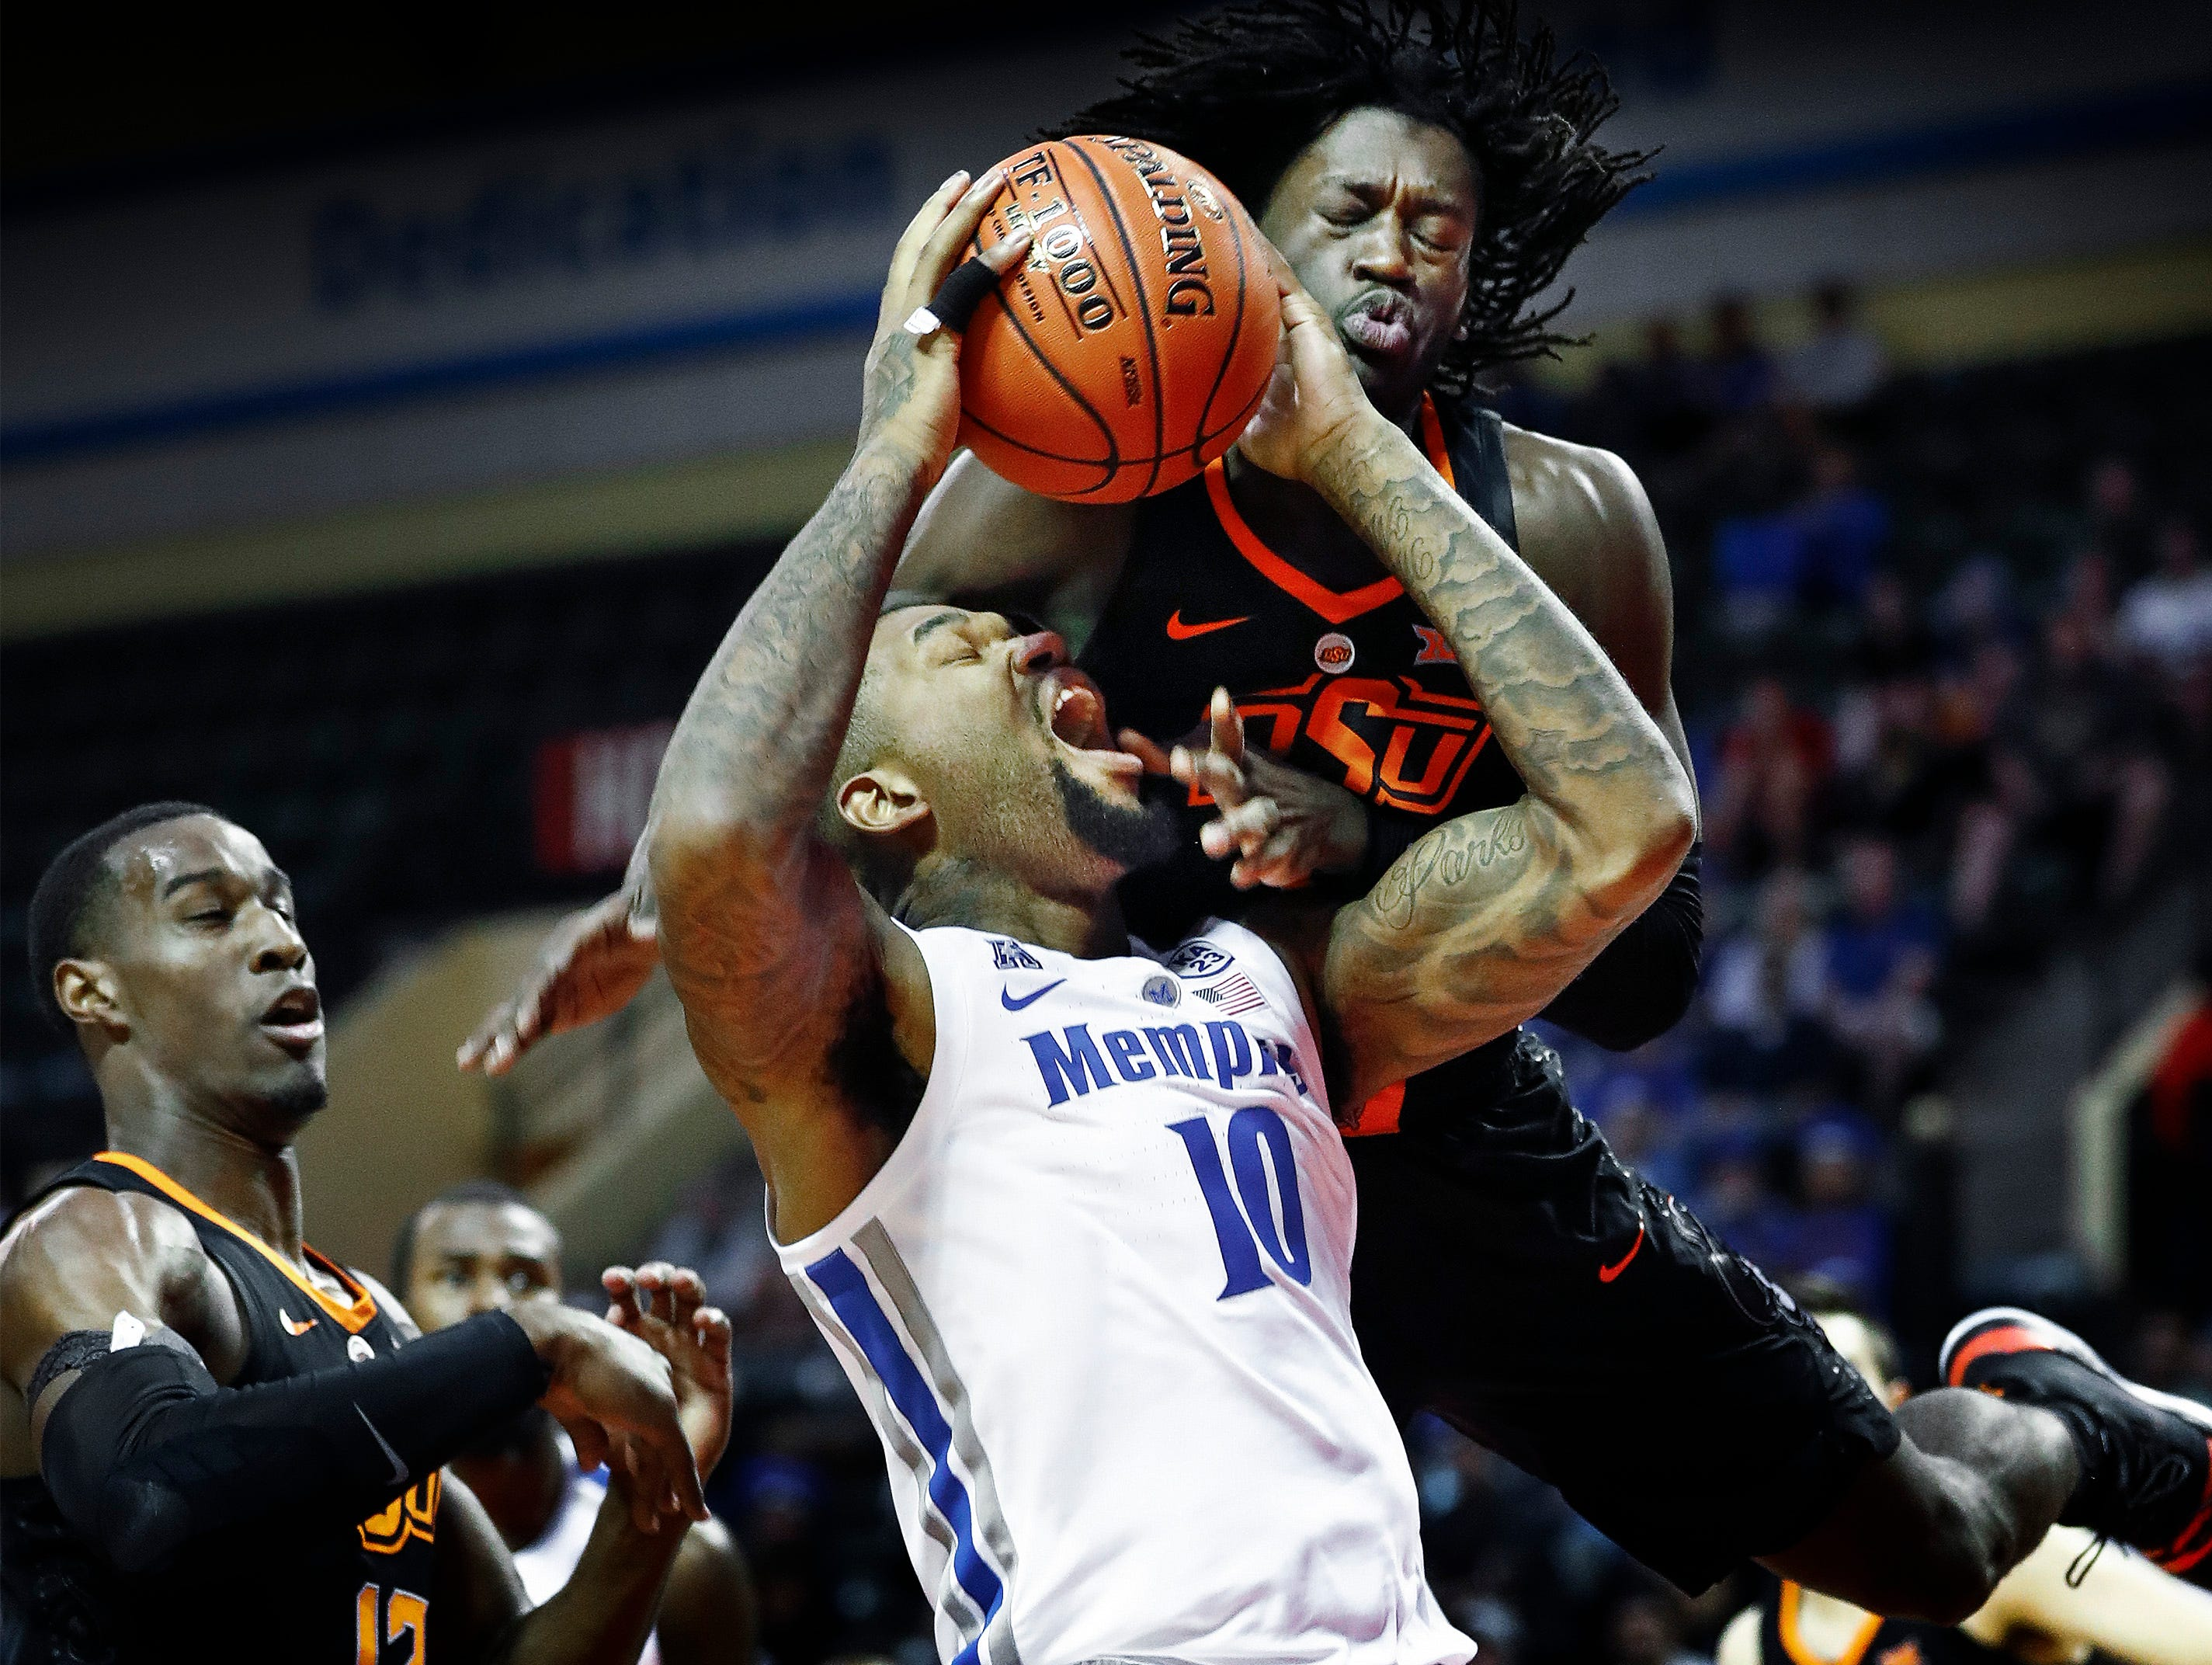 Memphis forward Mike Parks Jr. (bottom) is fouled by Oklahoma State defender Isaac Likekele (top) during first round action in the Advocate Invitational in Orlando Thursday, November 22, 2018.